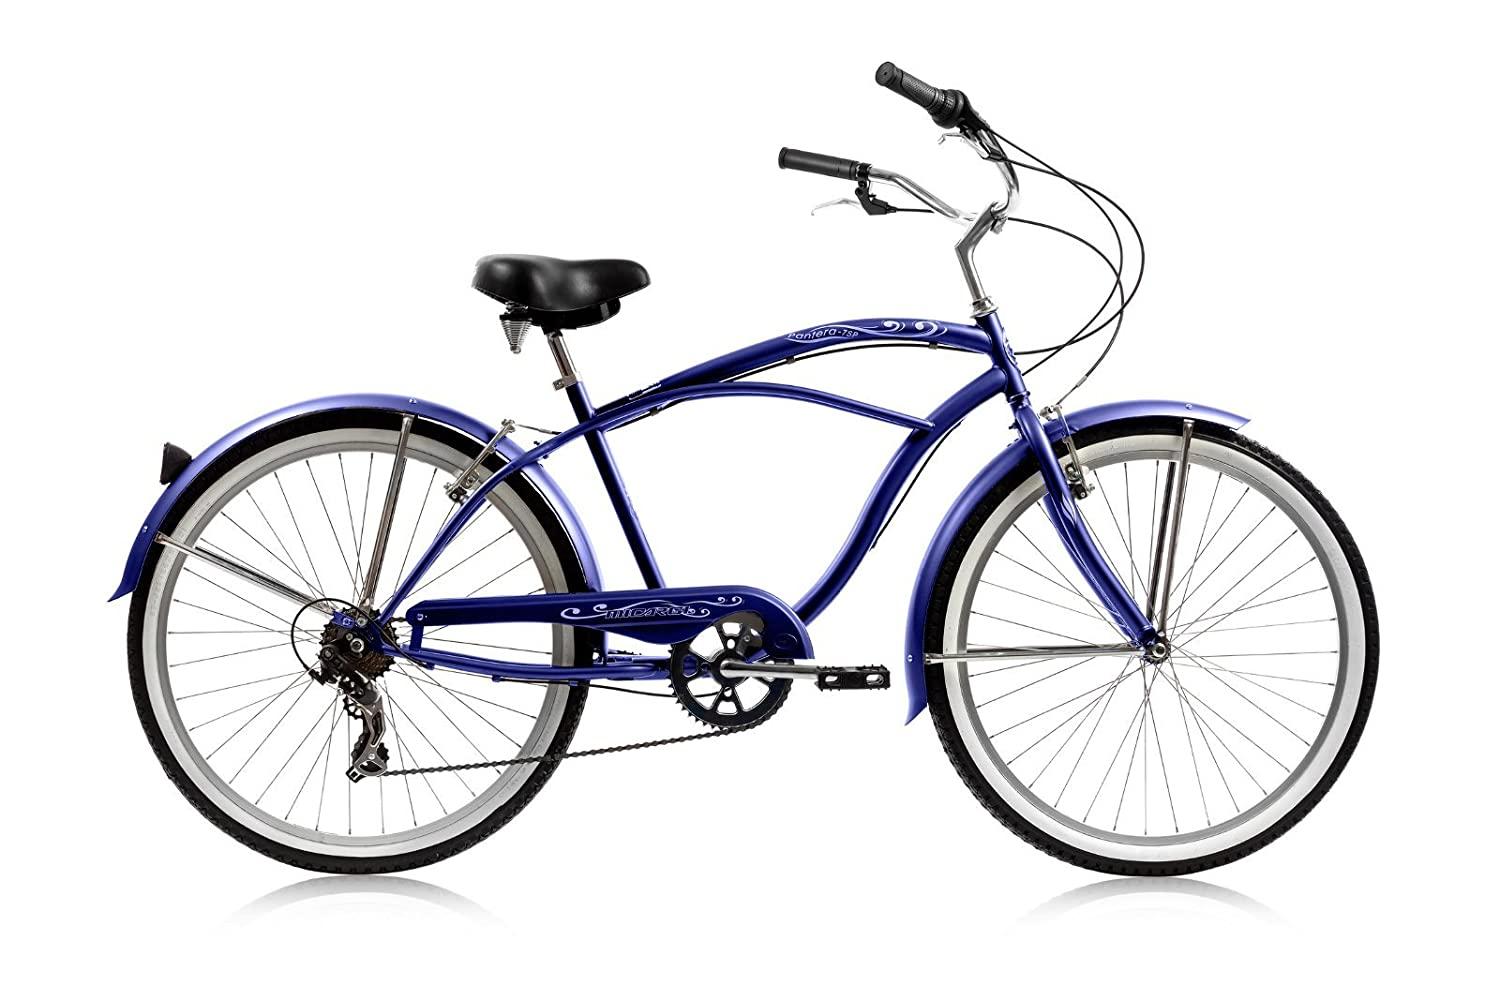 Micargi Pantera 7-speed 26 for men (Blue), Beach Cruiser Bike Schwinn Nirve Firmstrong Style by Micargi   B00ABXEBOM